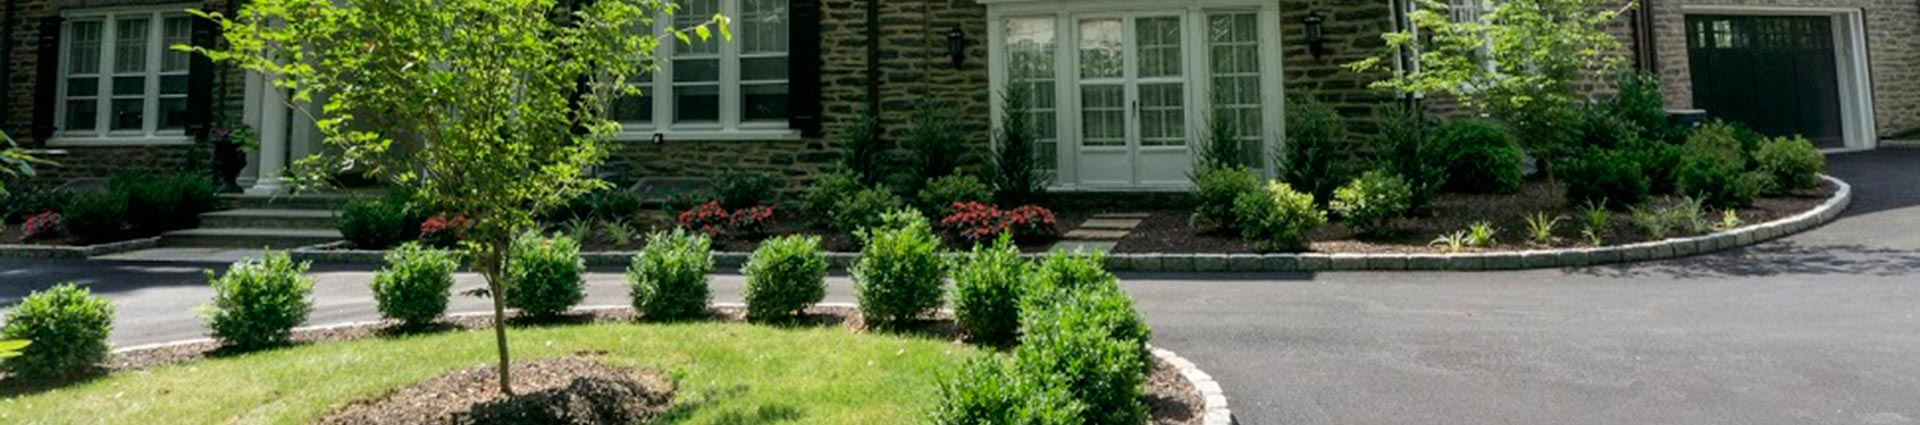 All Seasons Maintenance & Design - Lafayette Hill Landscaping